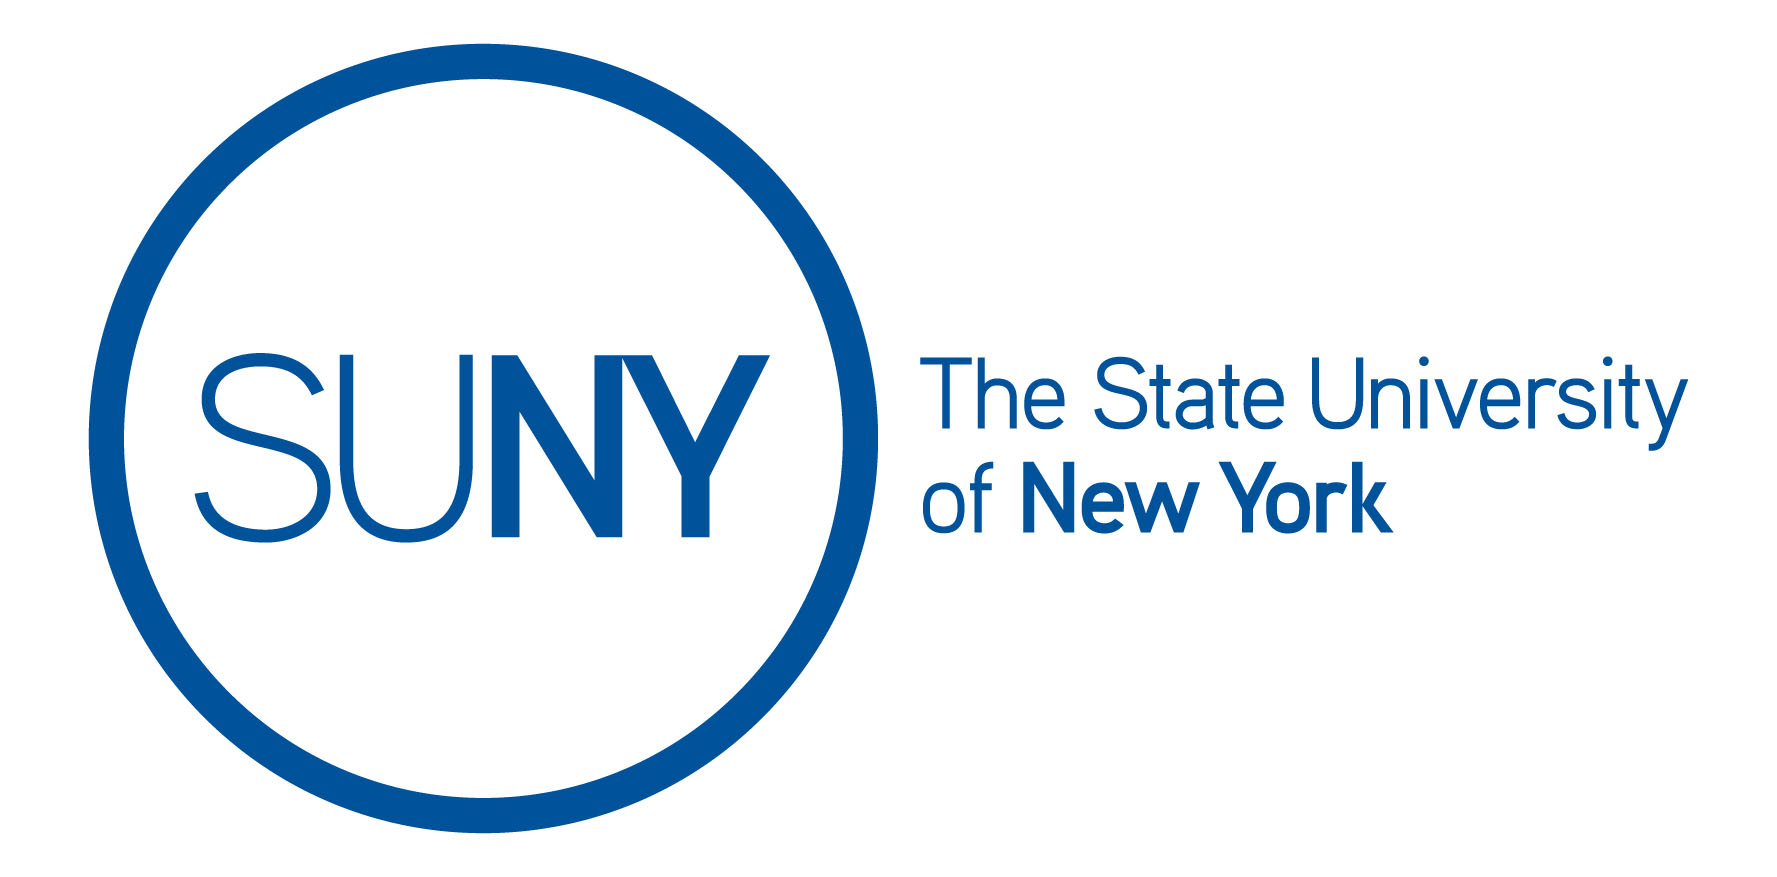 state university of new york dissertations The state university of new york (suny / ˈ s uː n iː /) is a system of public institutions of higher education in new york, united states it is one of the largest.